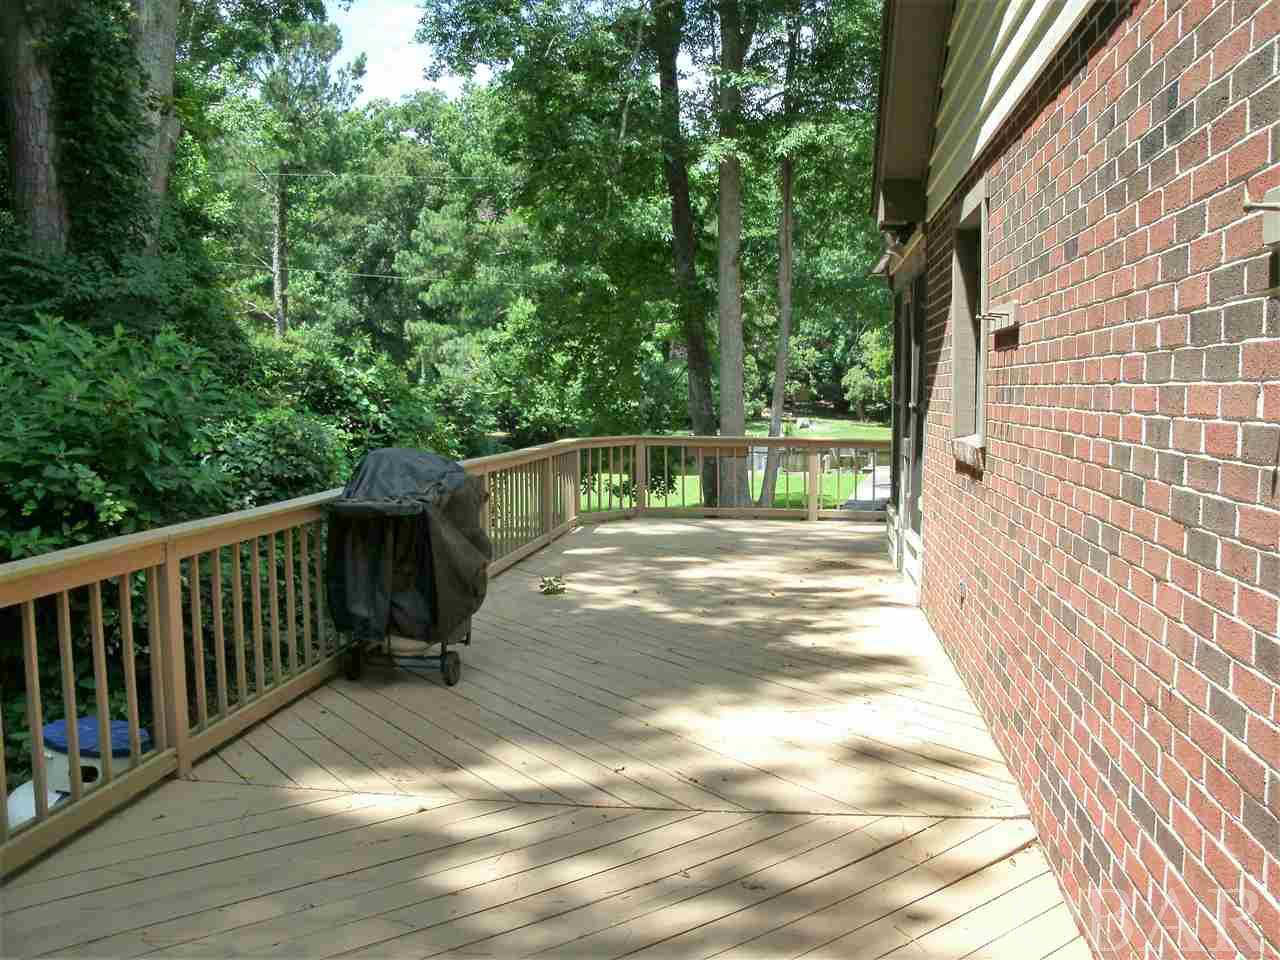 72 Hickory Trail,Southern Shores,NC 27948,4 Bedrooms Bedrooms,3 BathroomsBathrooms,Residential,Hickory Trail,101027